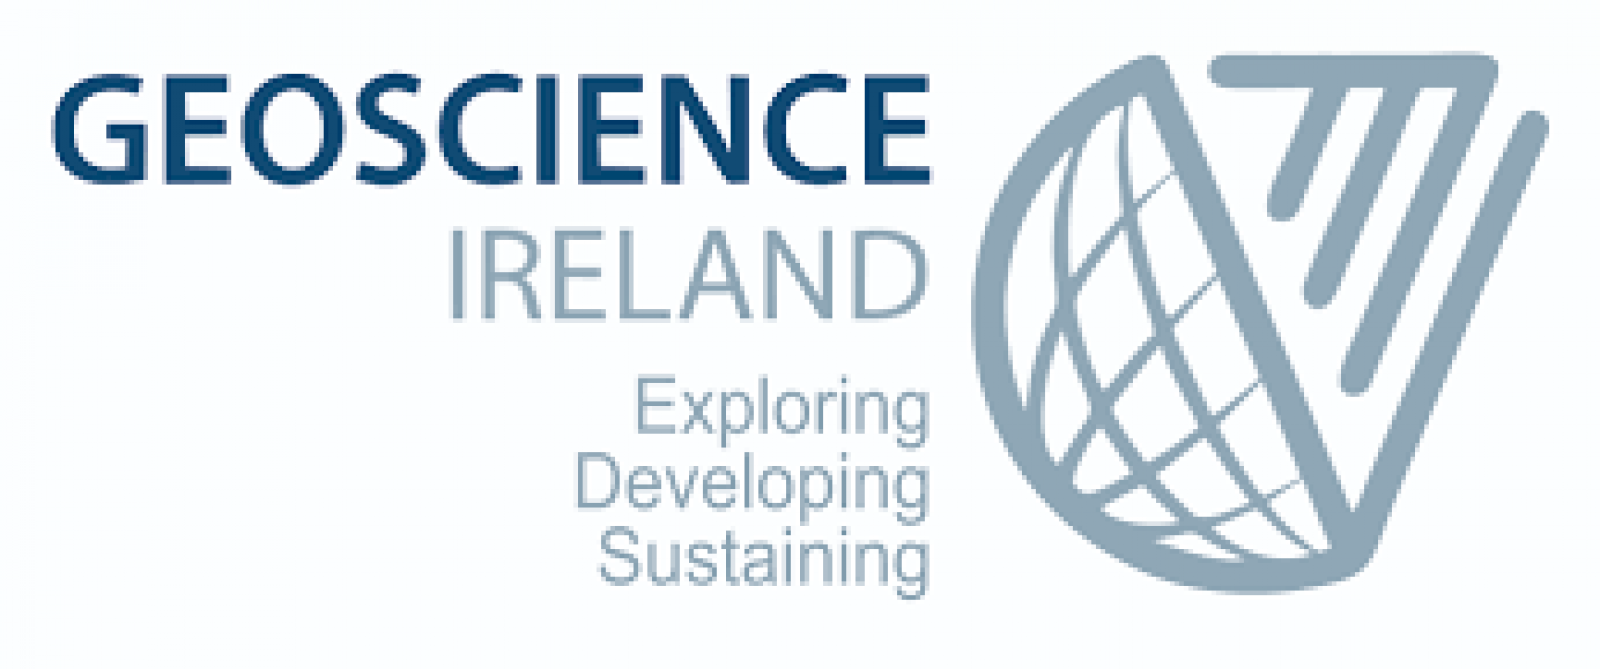 Geoscience Ireland 'Plotting A Growth Path Through Diversification And Innovation' Piece In The Engineers Journal